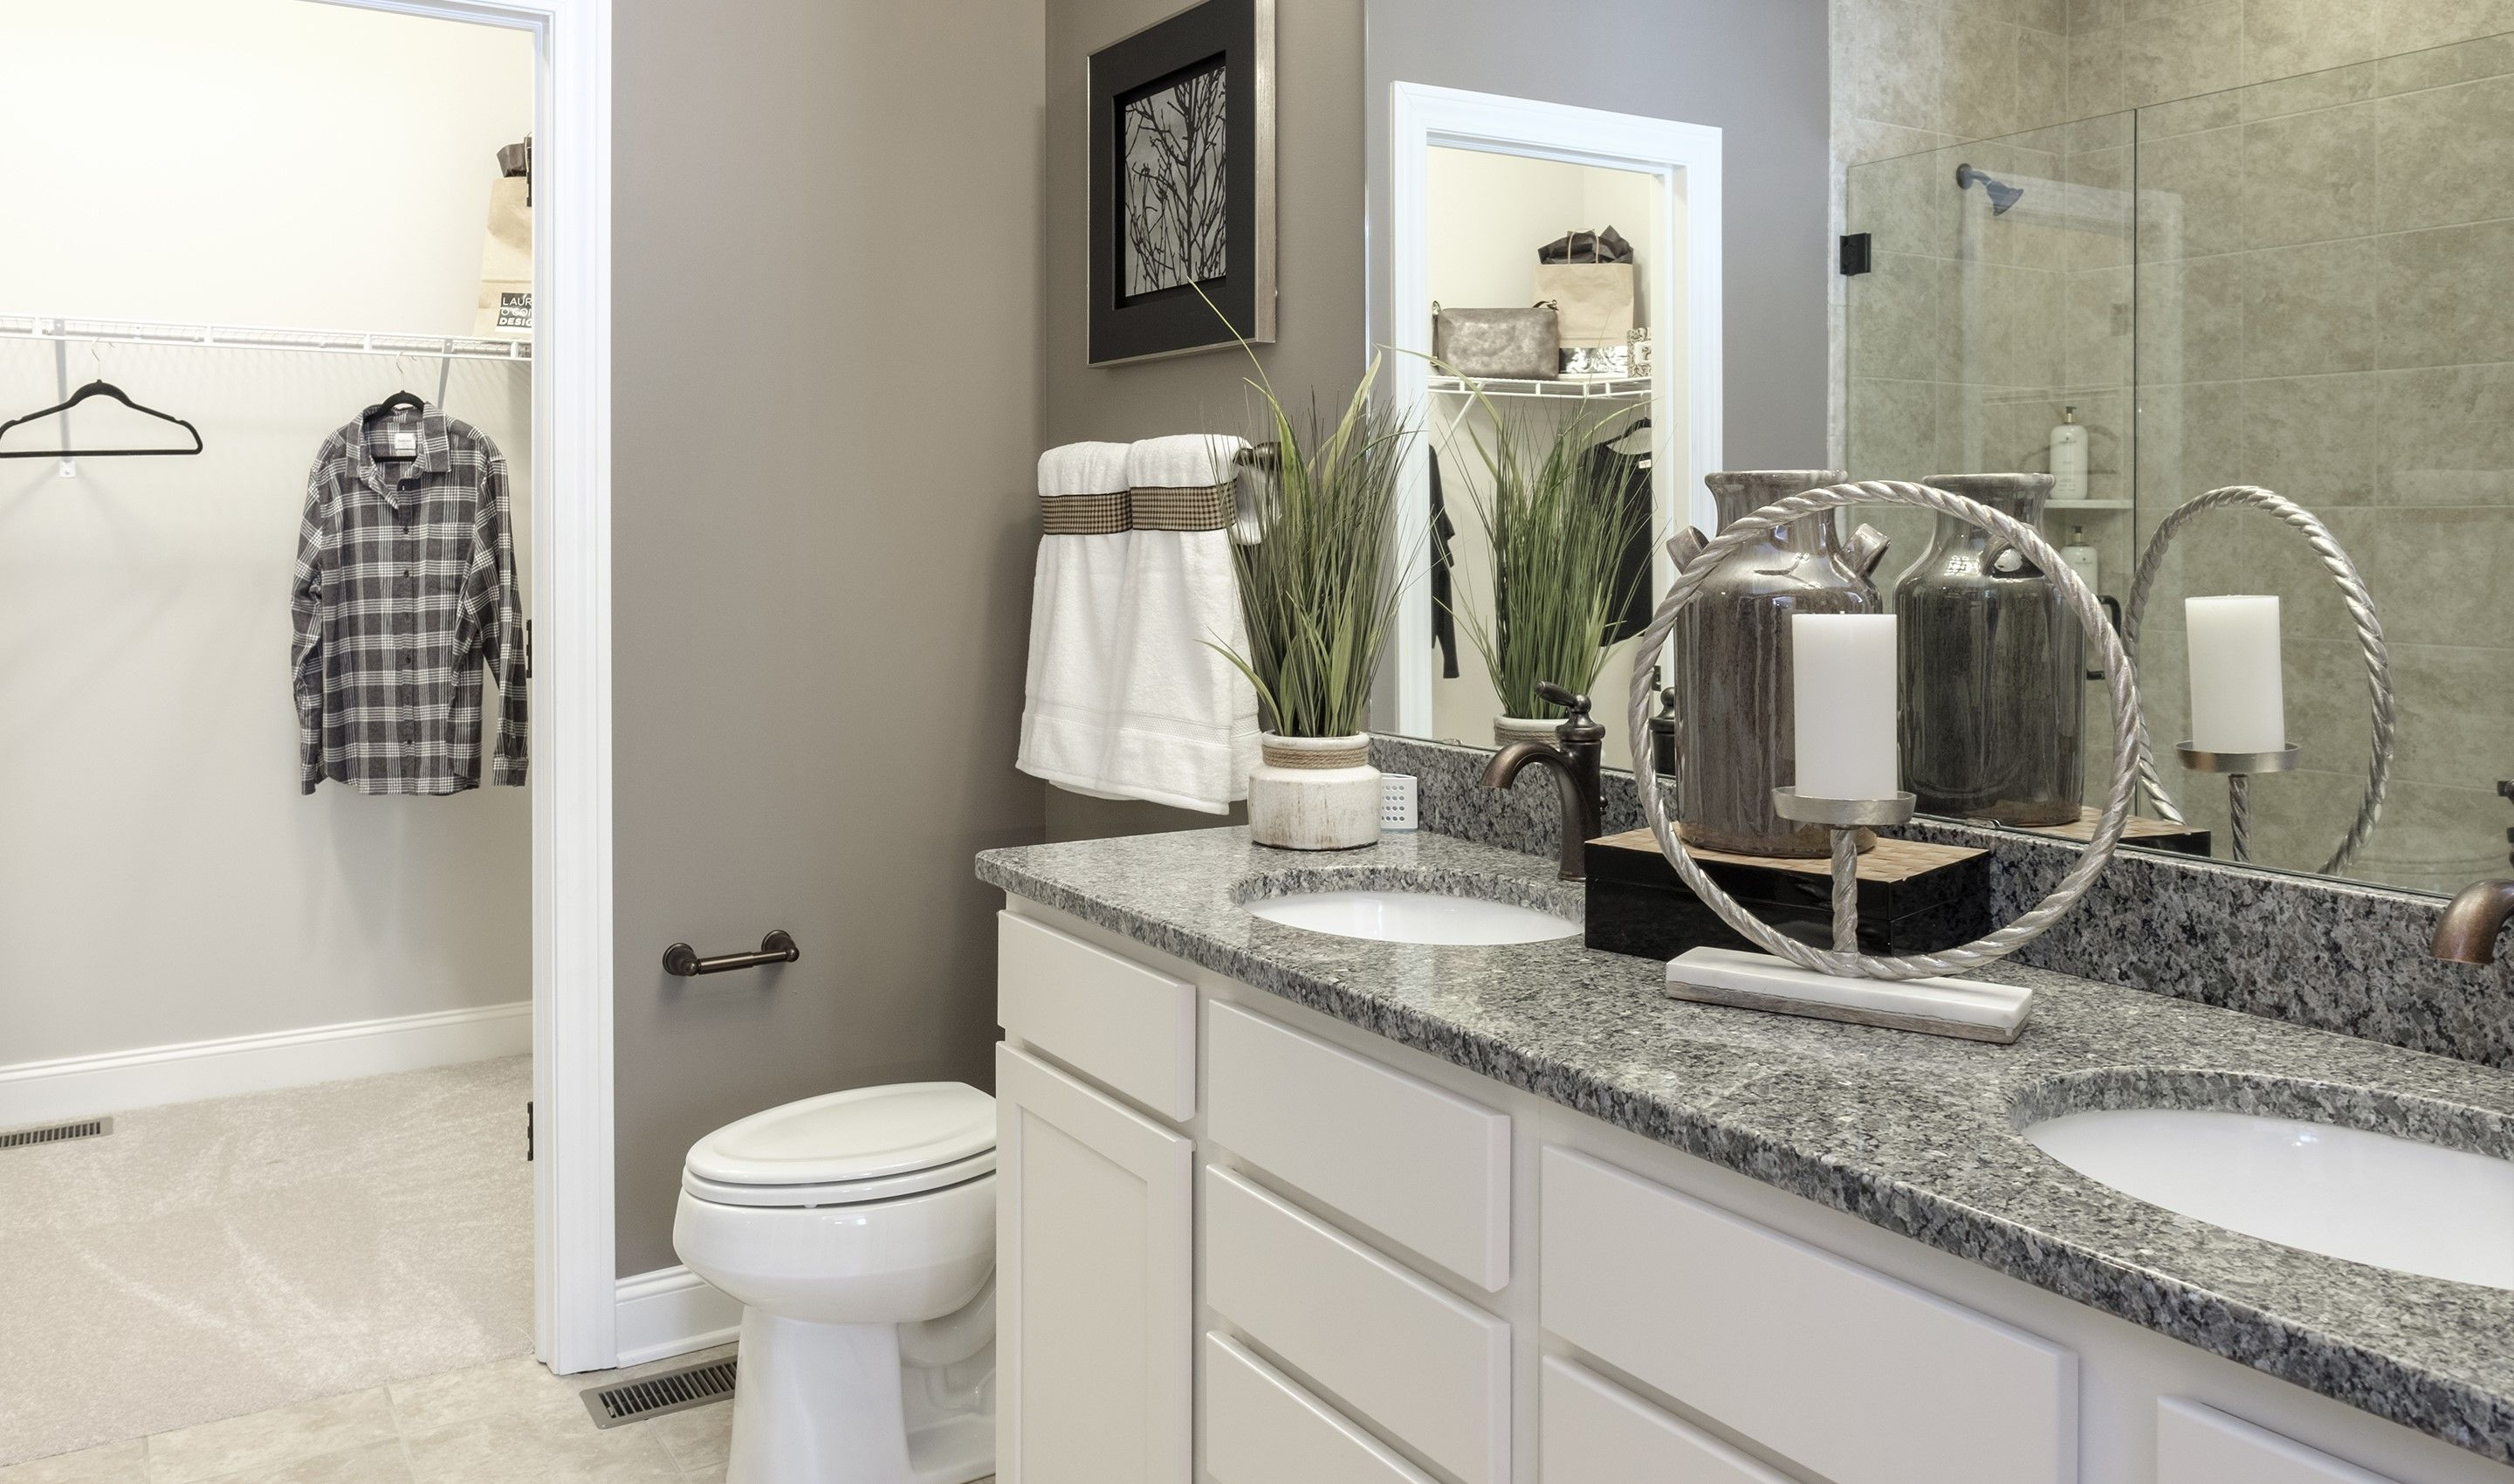 Bathroom featured in the Bedford By K. Hovnanian® Homes in Cleveland, OH